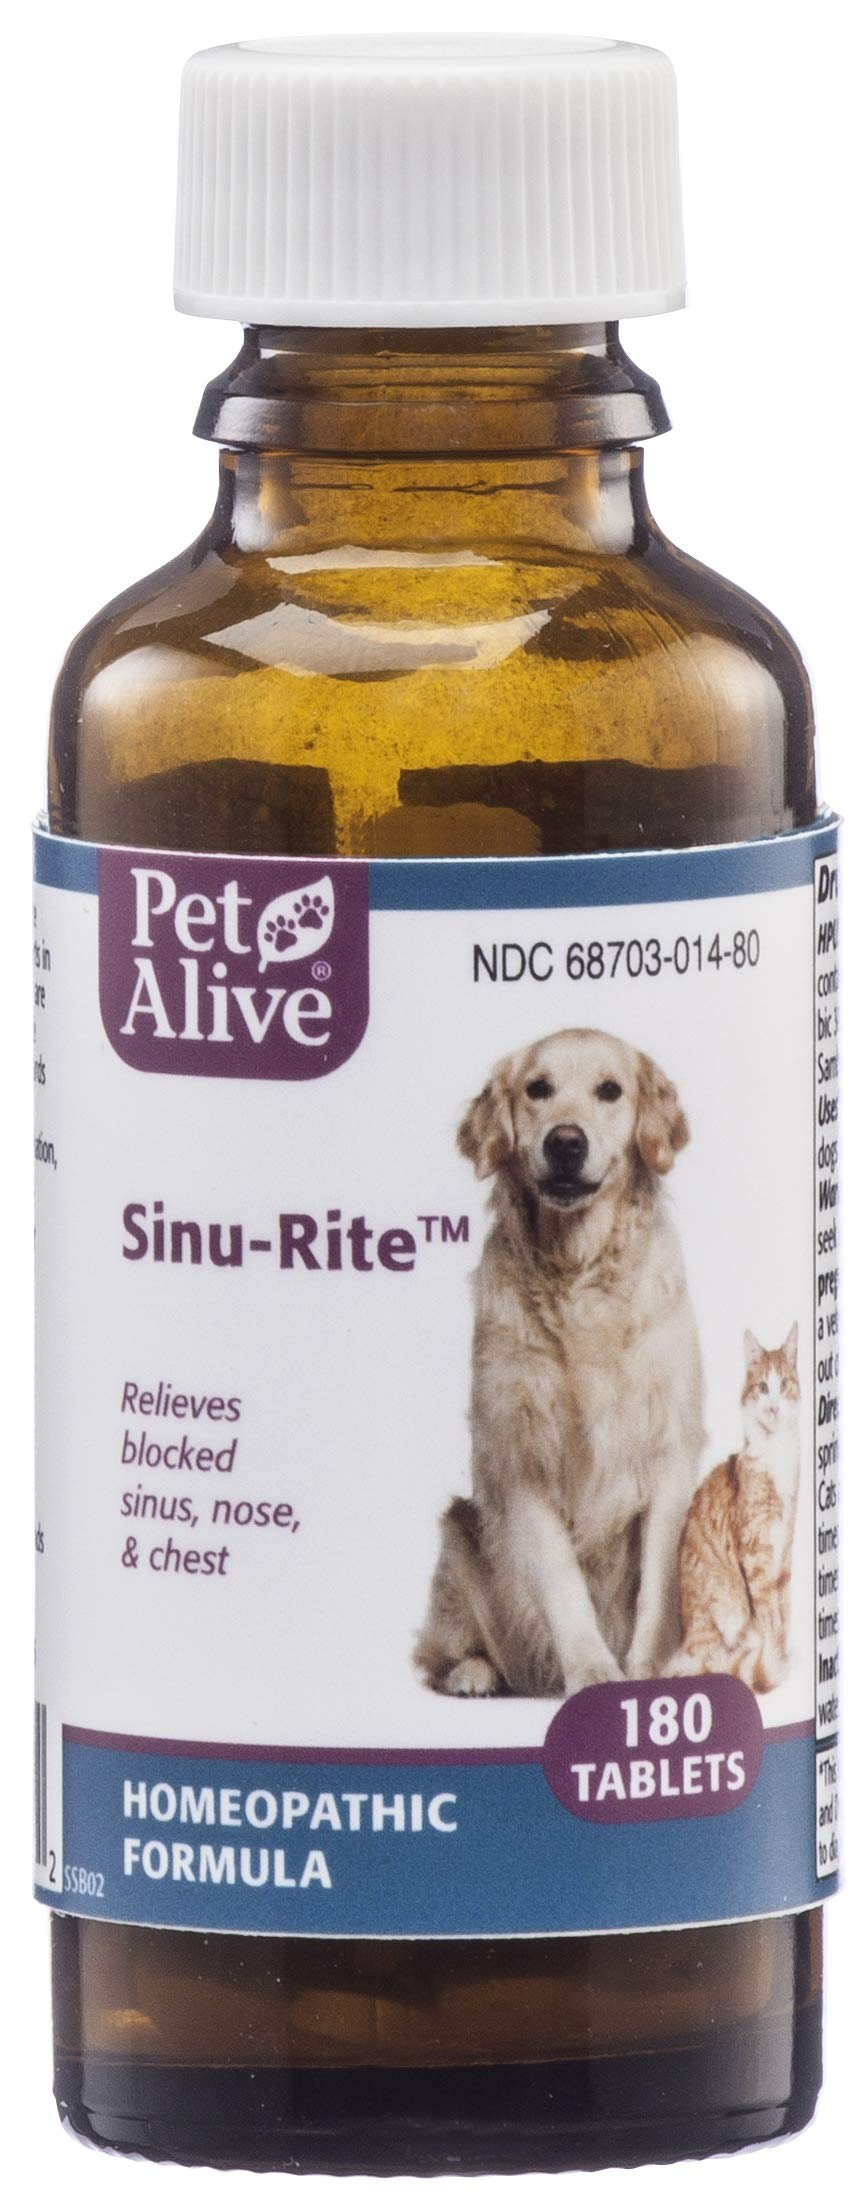 PetAlive Sinu-Rite - Natural Homeopathic Formula for Allergy-Related Congestion and Acute Sinusitis in Dogs and Cats - Relieves Blocked Sinus, Nose and Chest in Pets - 180 Tablets by PetAlive